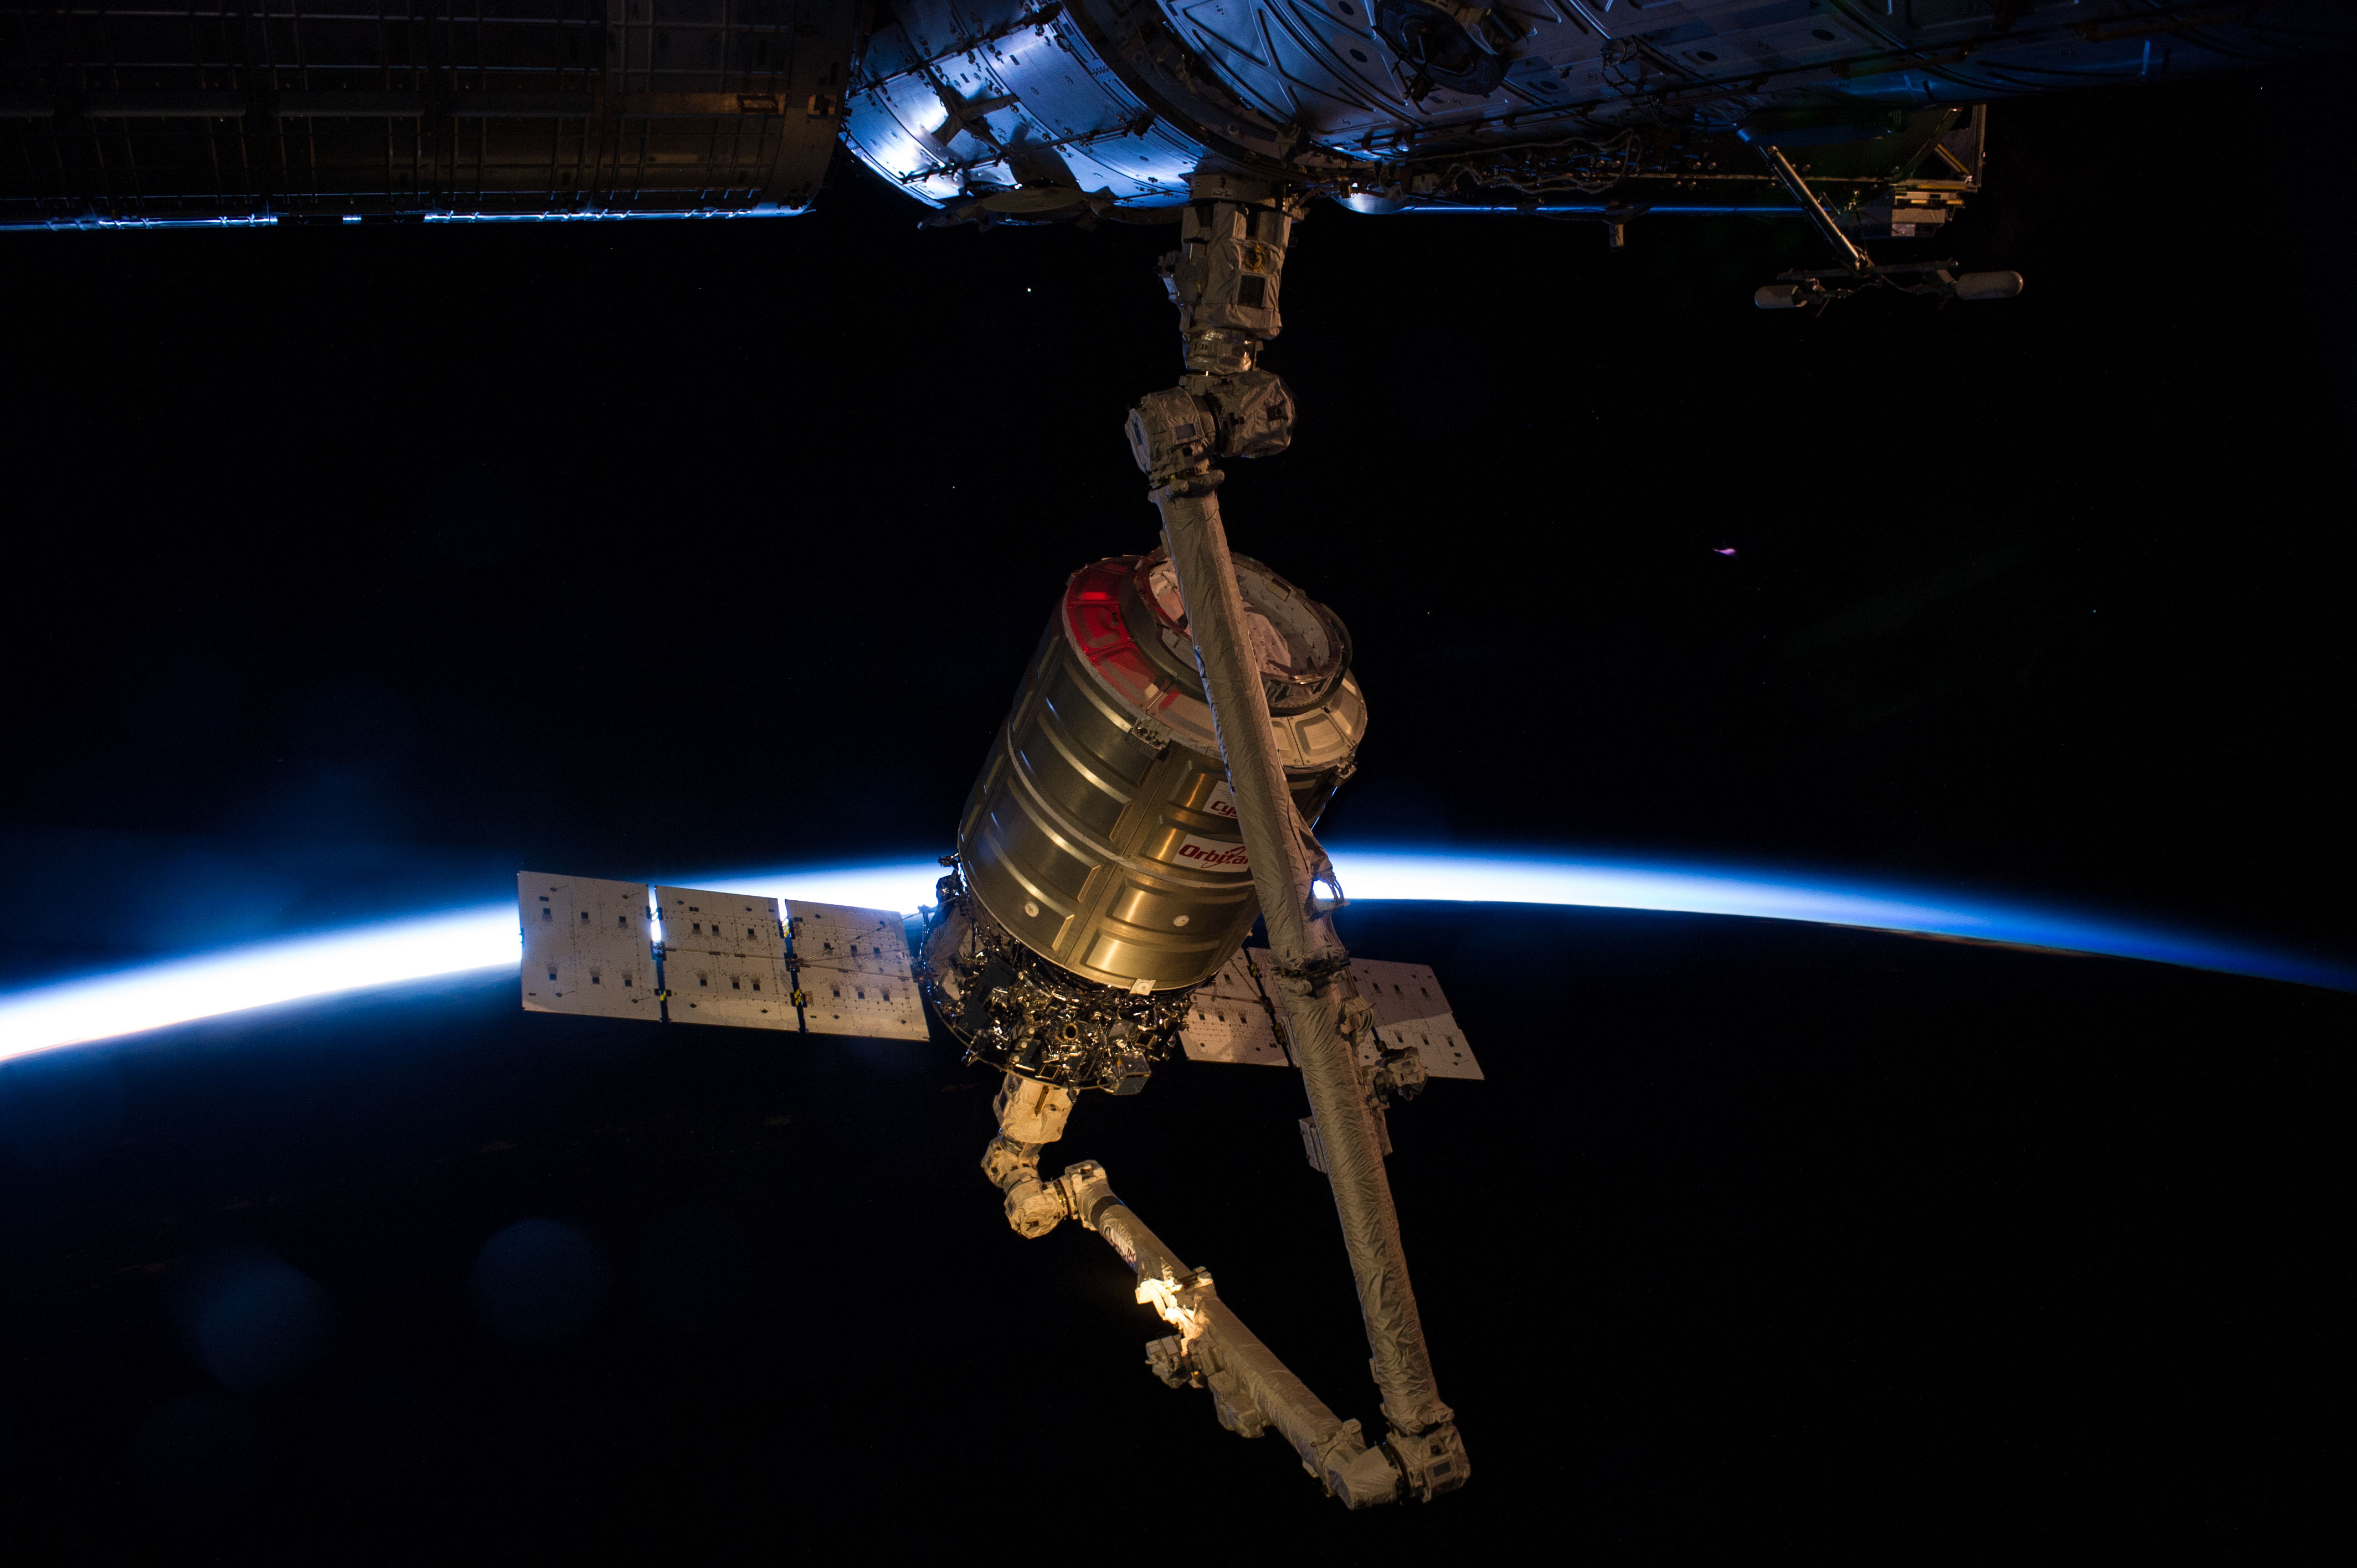 Cygnus Delivers Science, Station Supplies | NASA